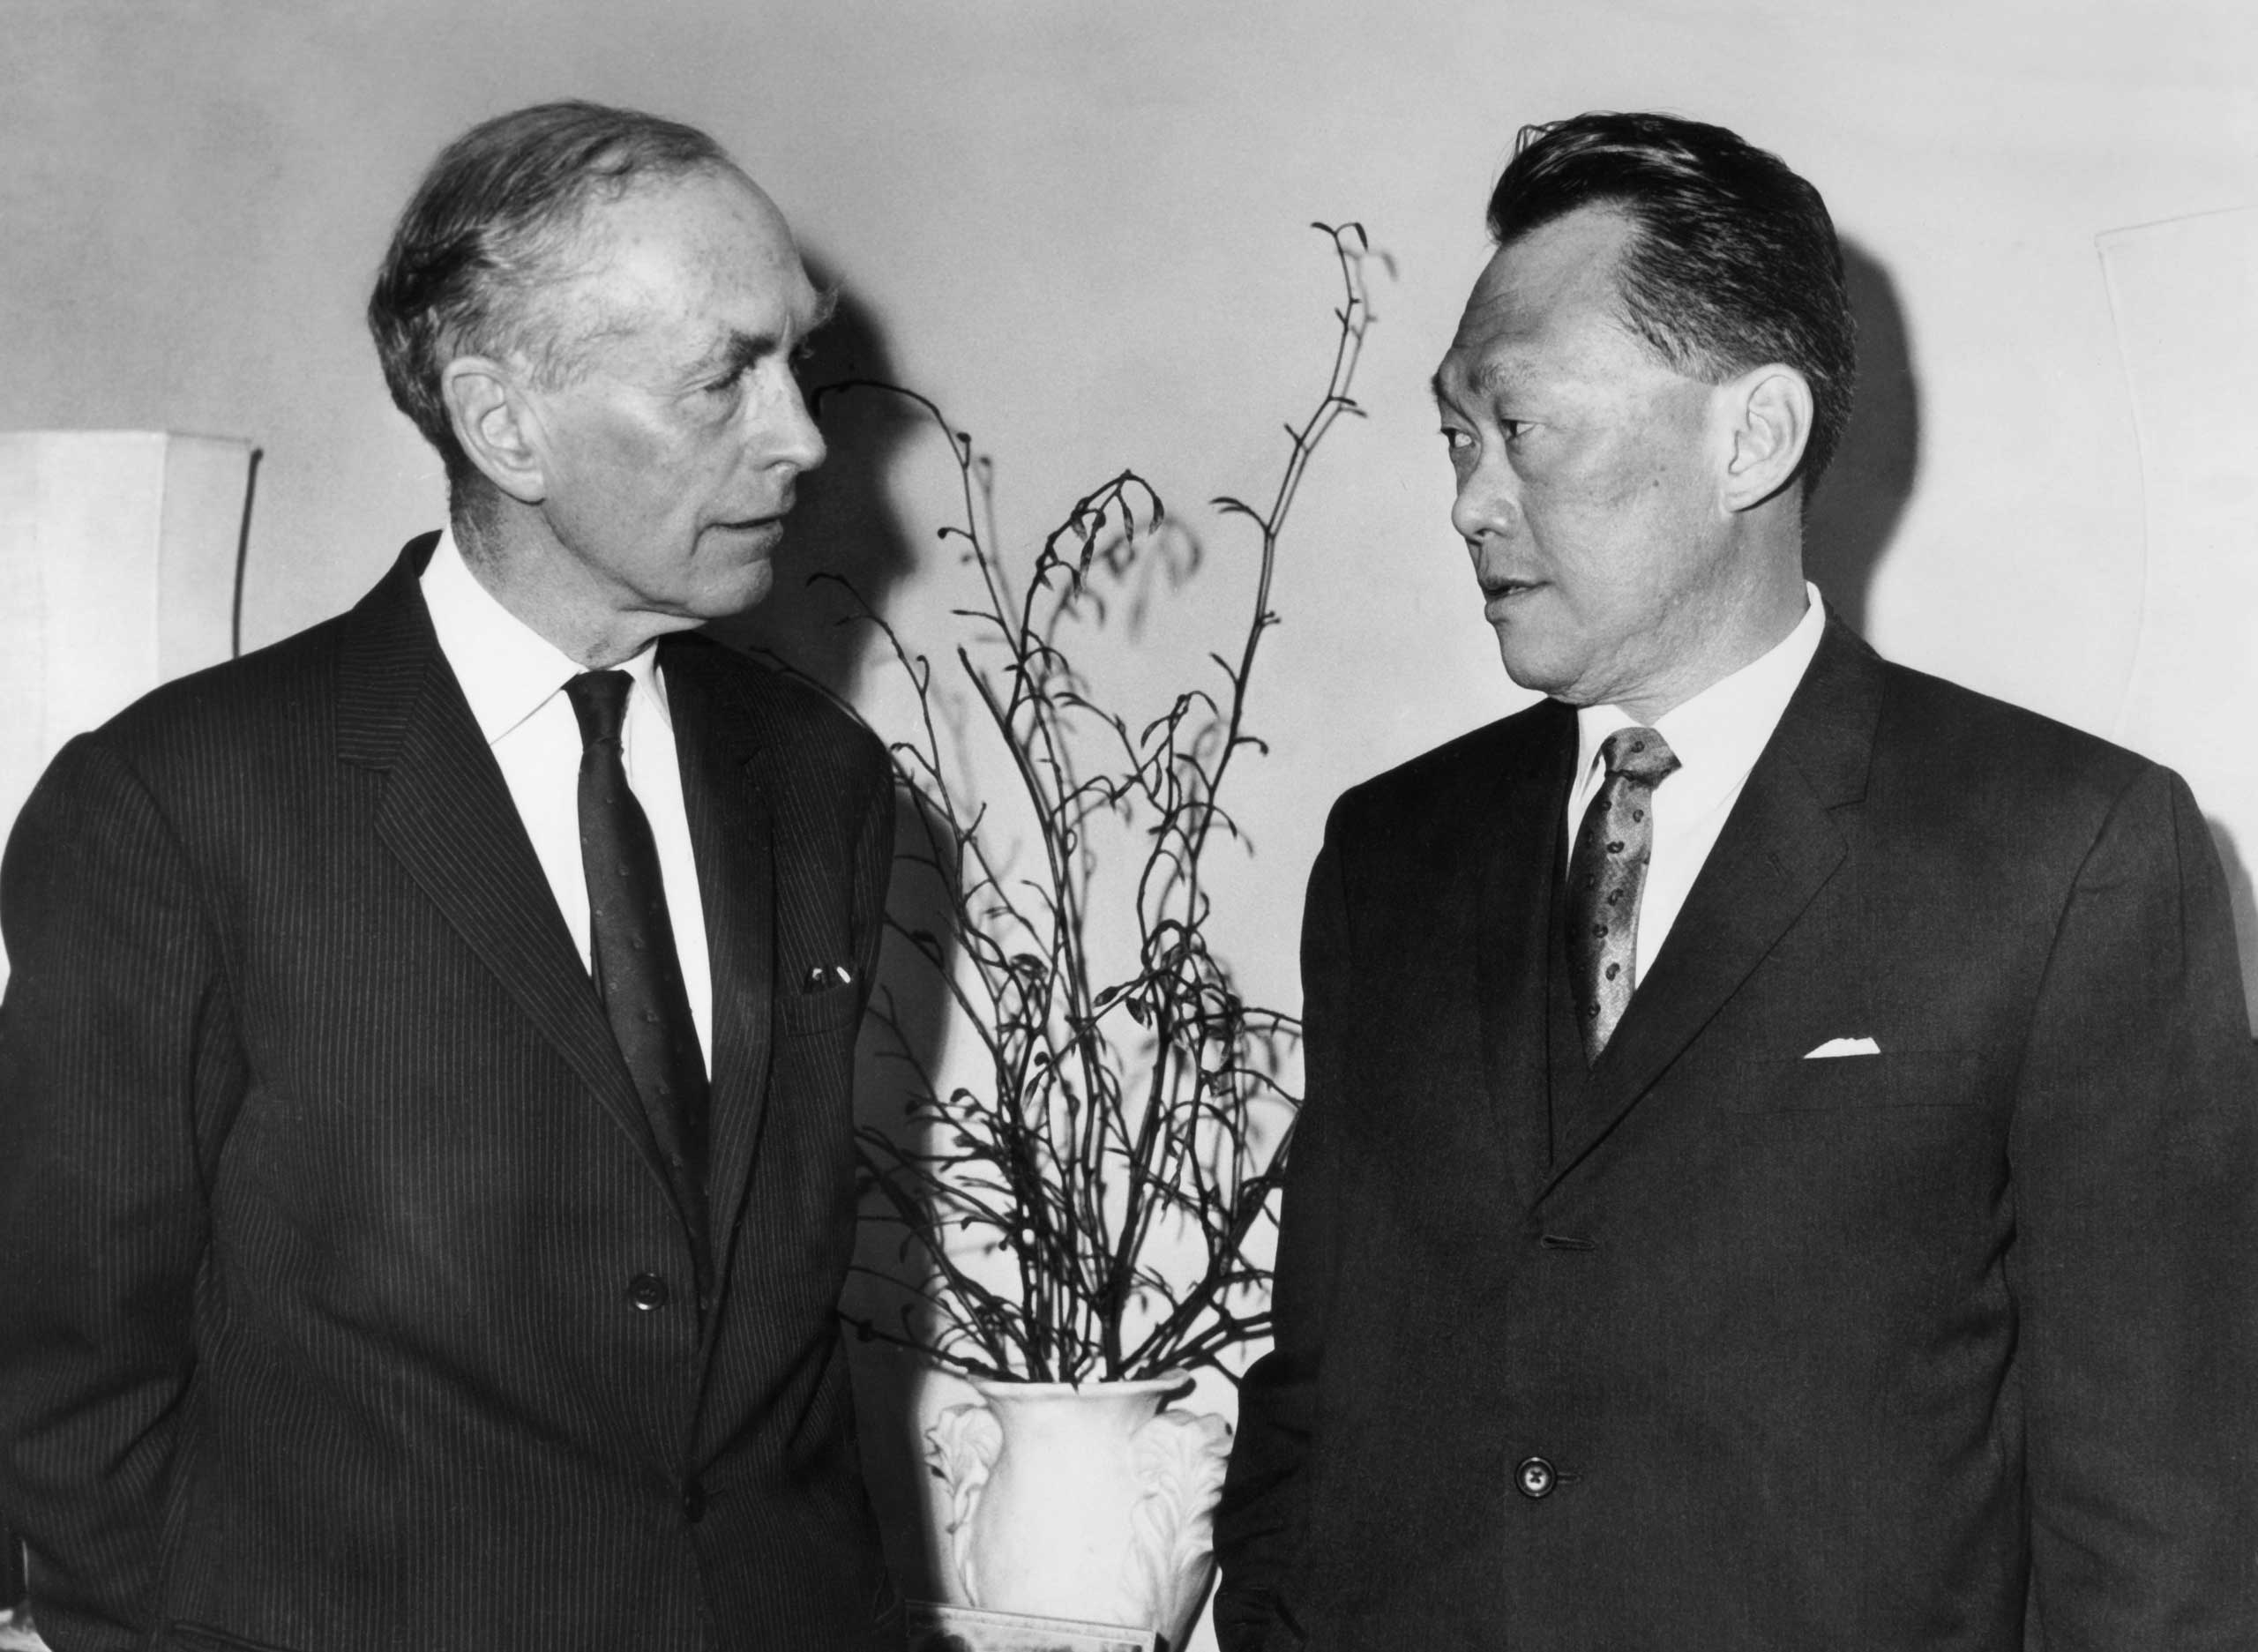 Sir Alec Douglas Home, former British Prime Minister meets with Lee Kuan Yew, in London,  1969.